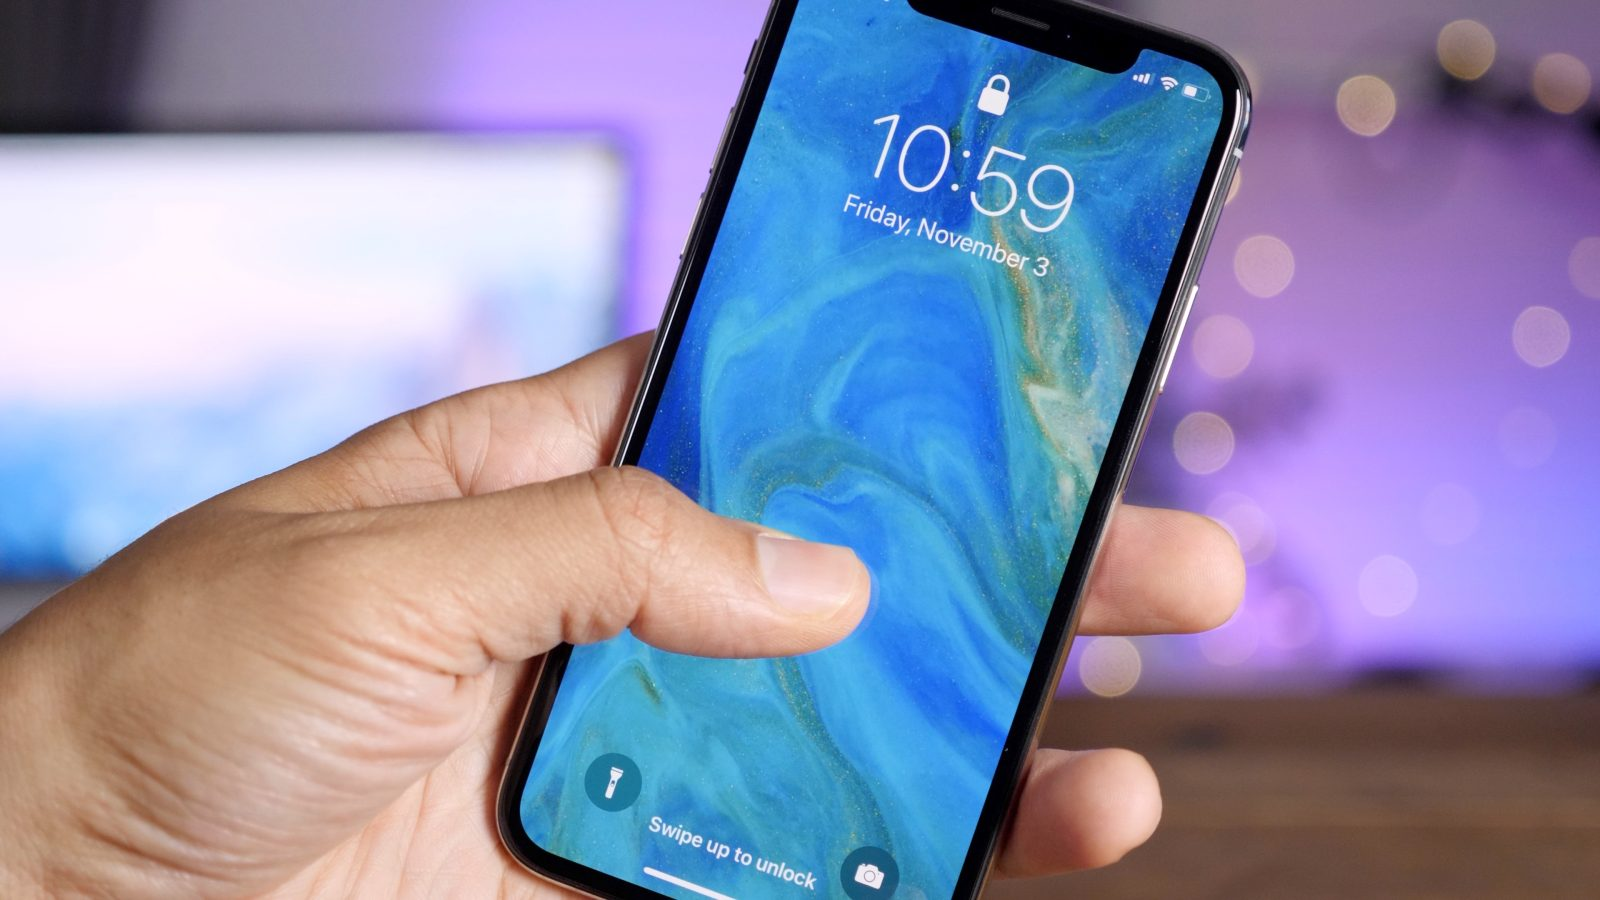 KGI: iPhone X demand & growth strong into 2018, iPhone 8 Plus selling better than expected | 9to5Mac